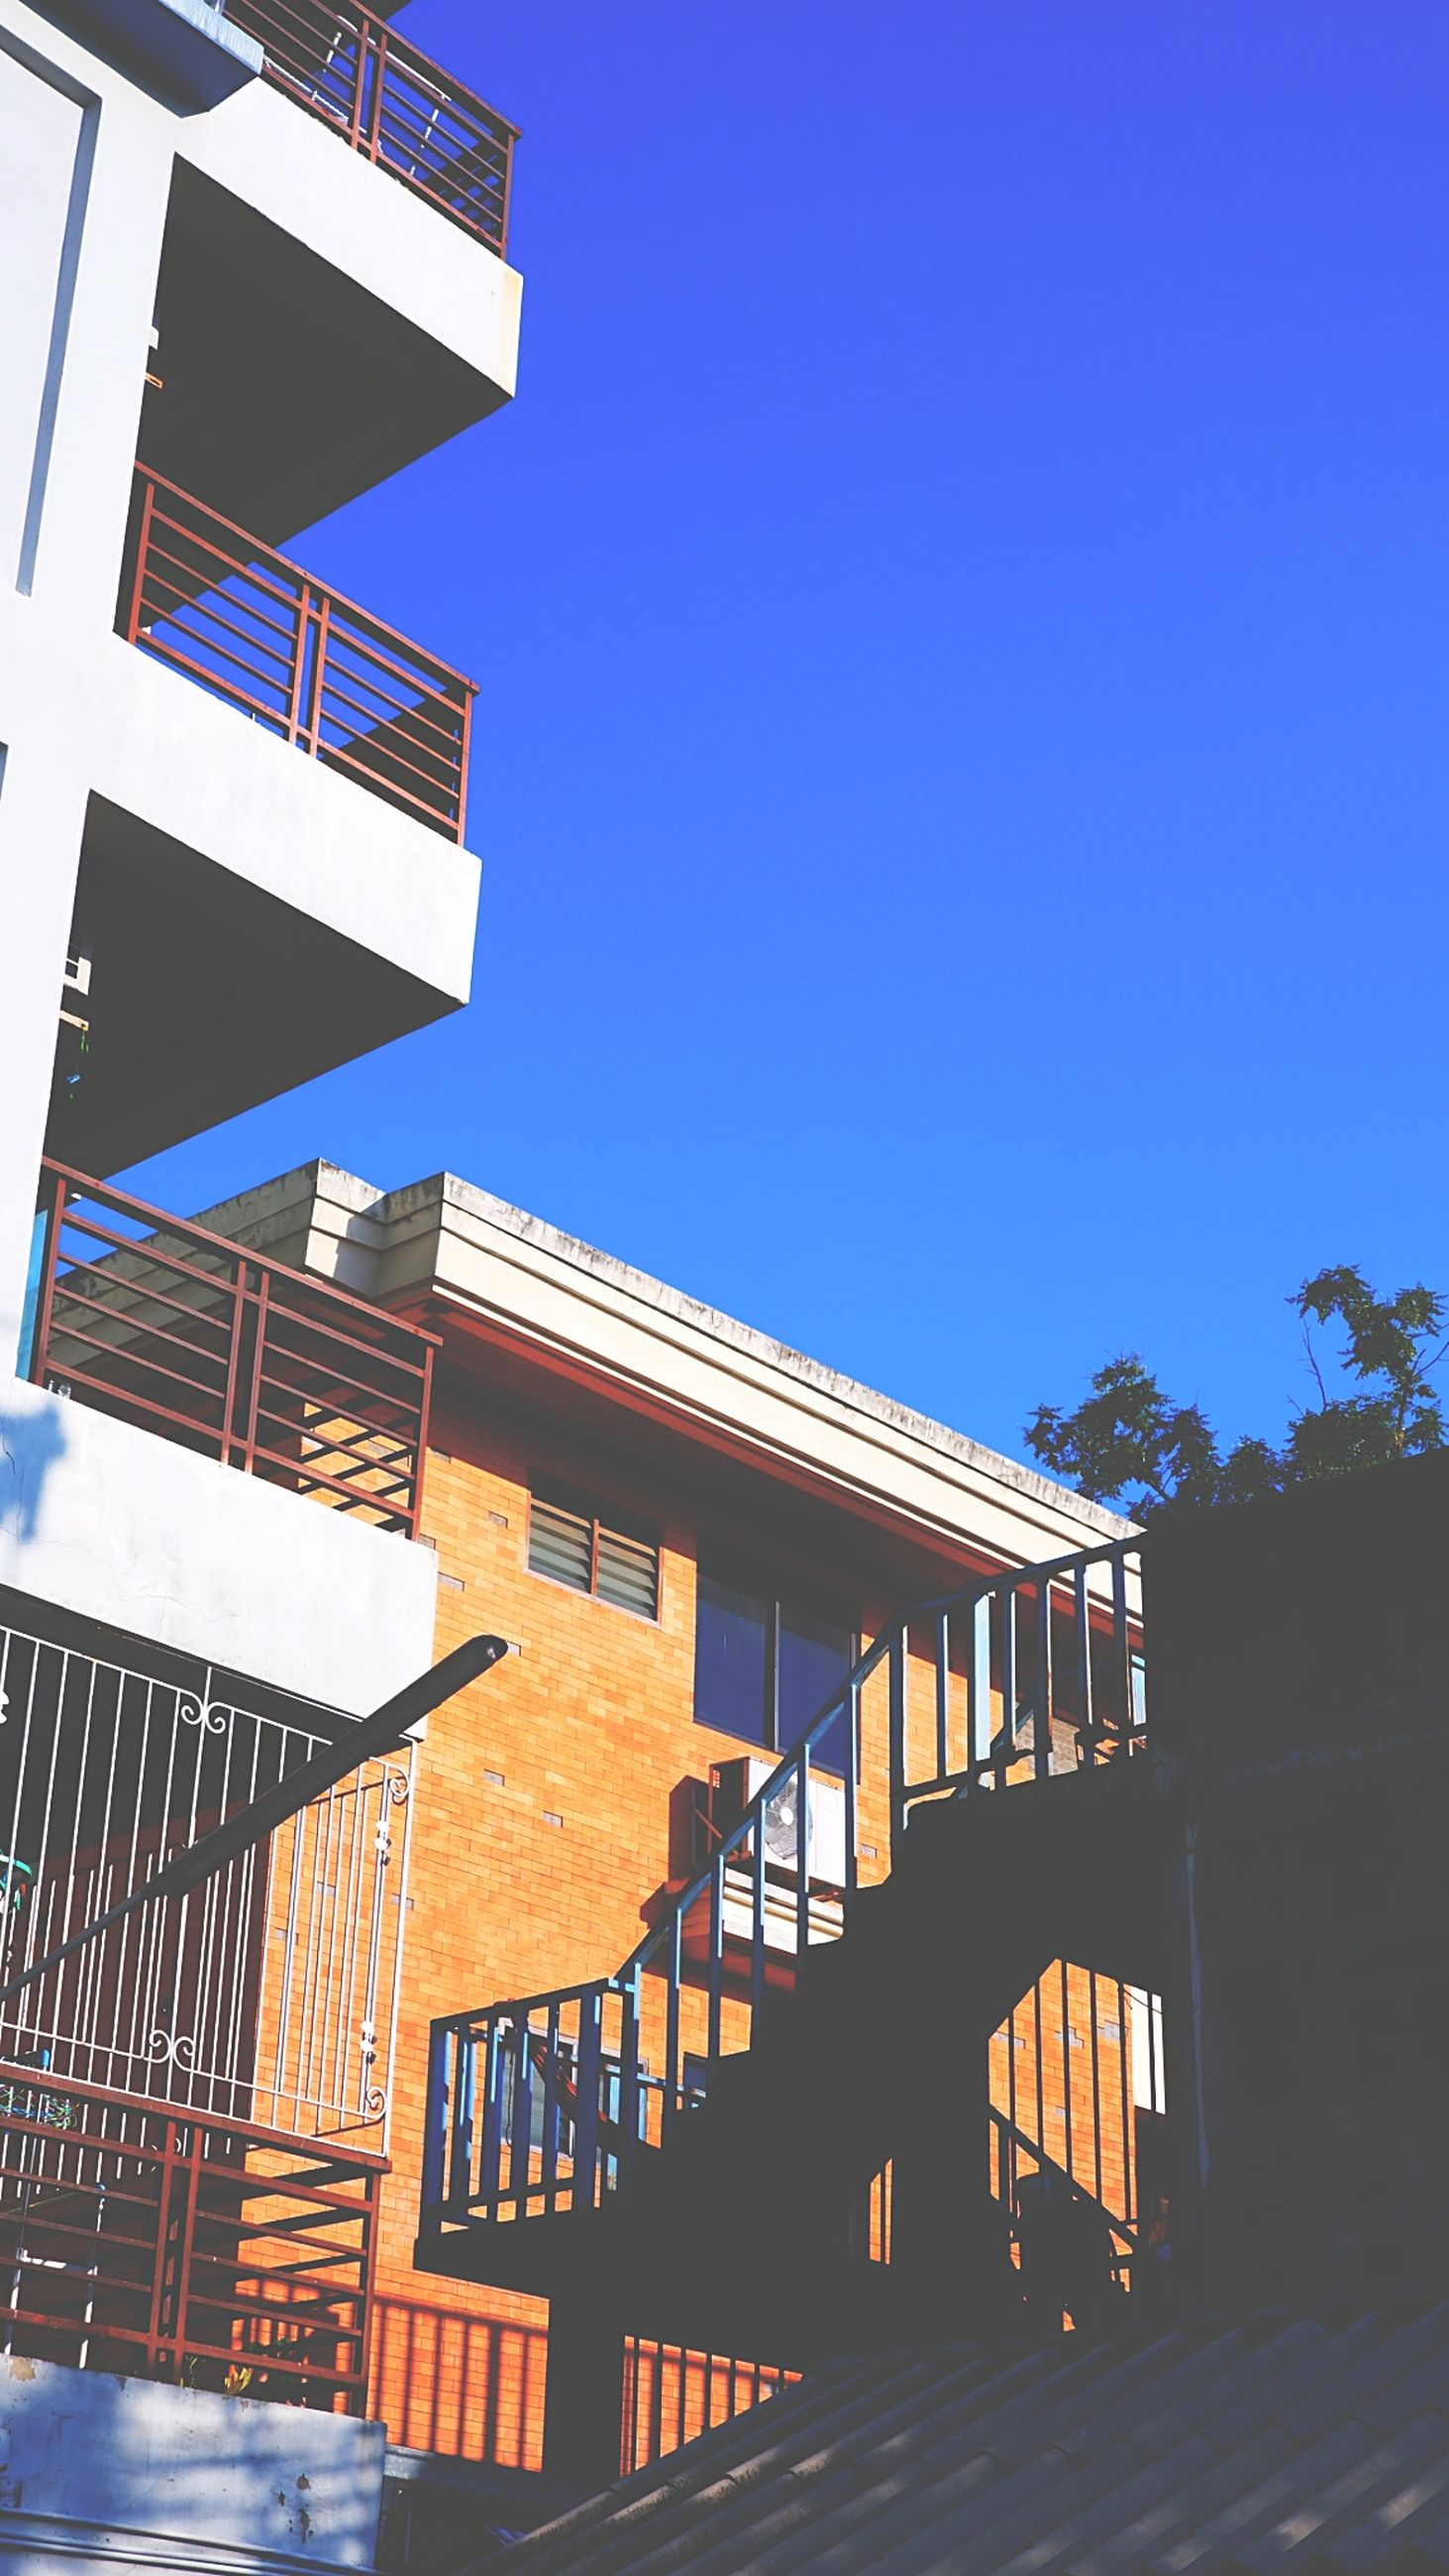 architecture, built structure, building exterior, sky, facade, house, building, clear sky, blue, nature, staircase, no people, city, sunny, railing, day, sunlight, outdoors, residential district, steps and staircases, residential area, low angle view, home